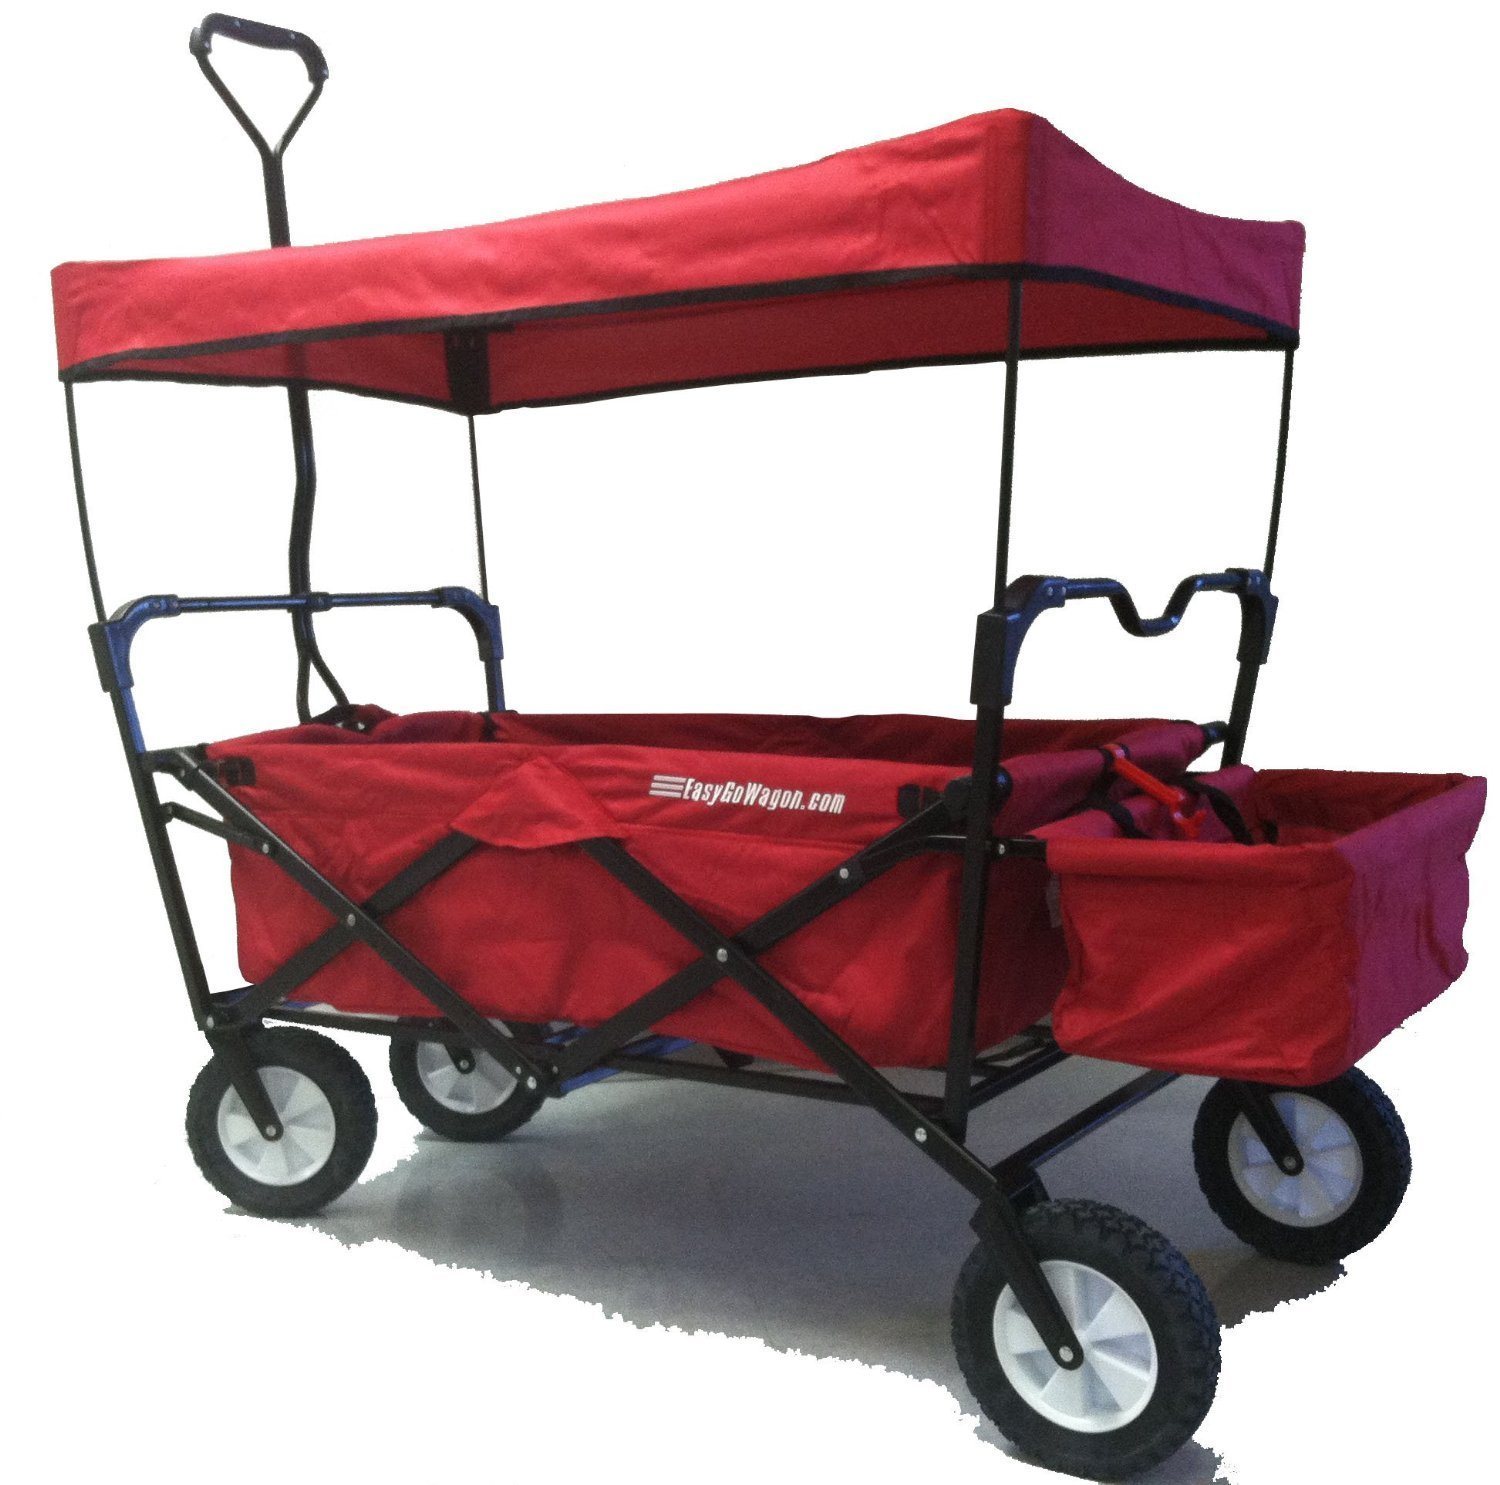 EasyGo Wagon Folding Collapsible Utility Wagon with Removable Canopy - Red